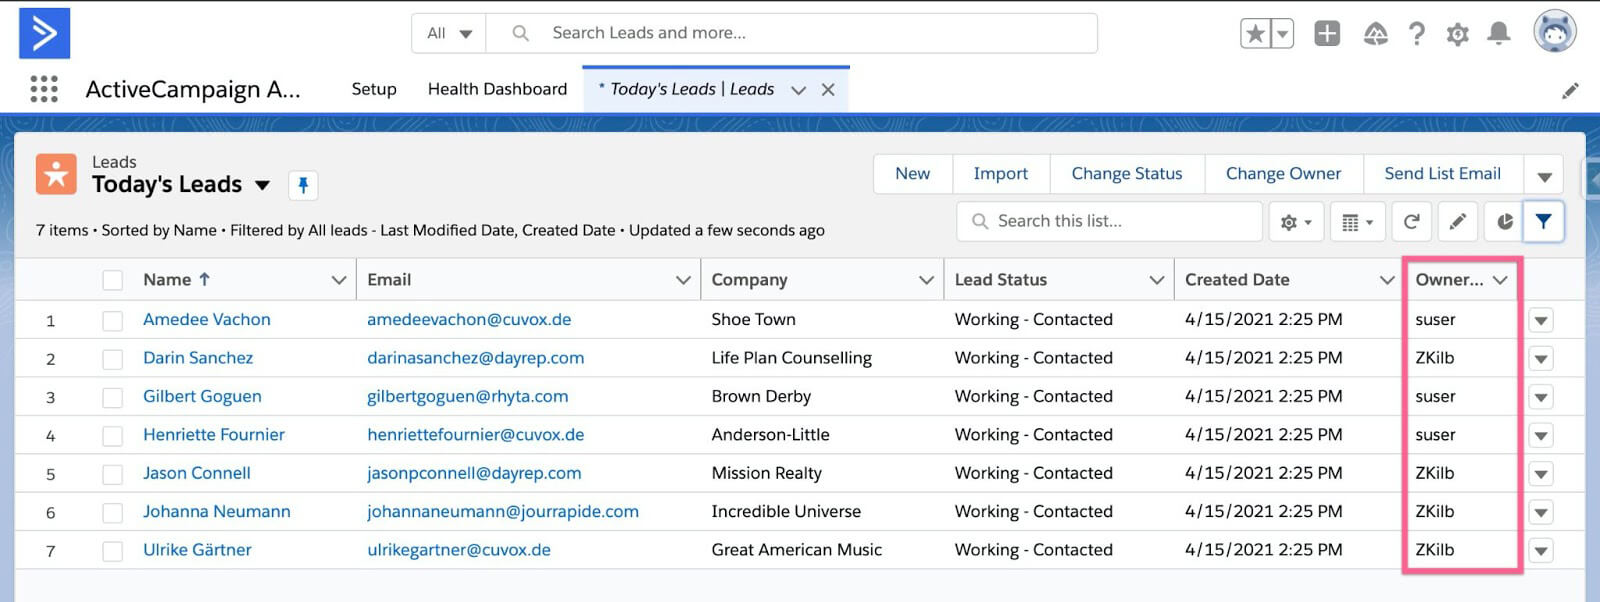 ActiveCampaign for Salesforce